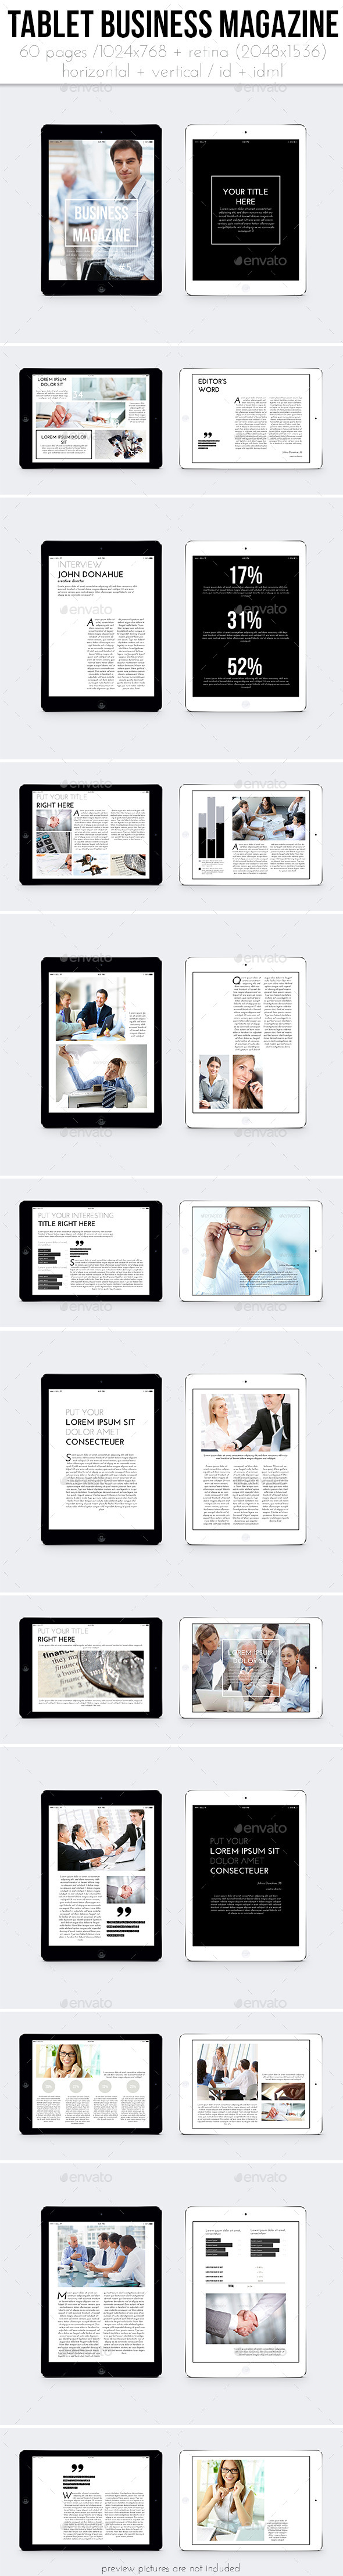 GraphicRiver iPad &Tablet Business Magazine 11774821